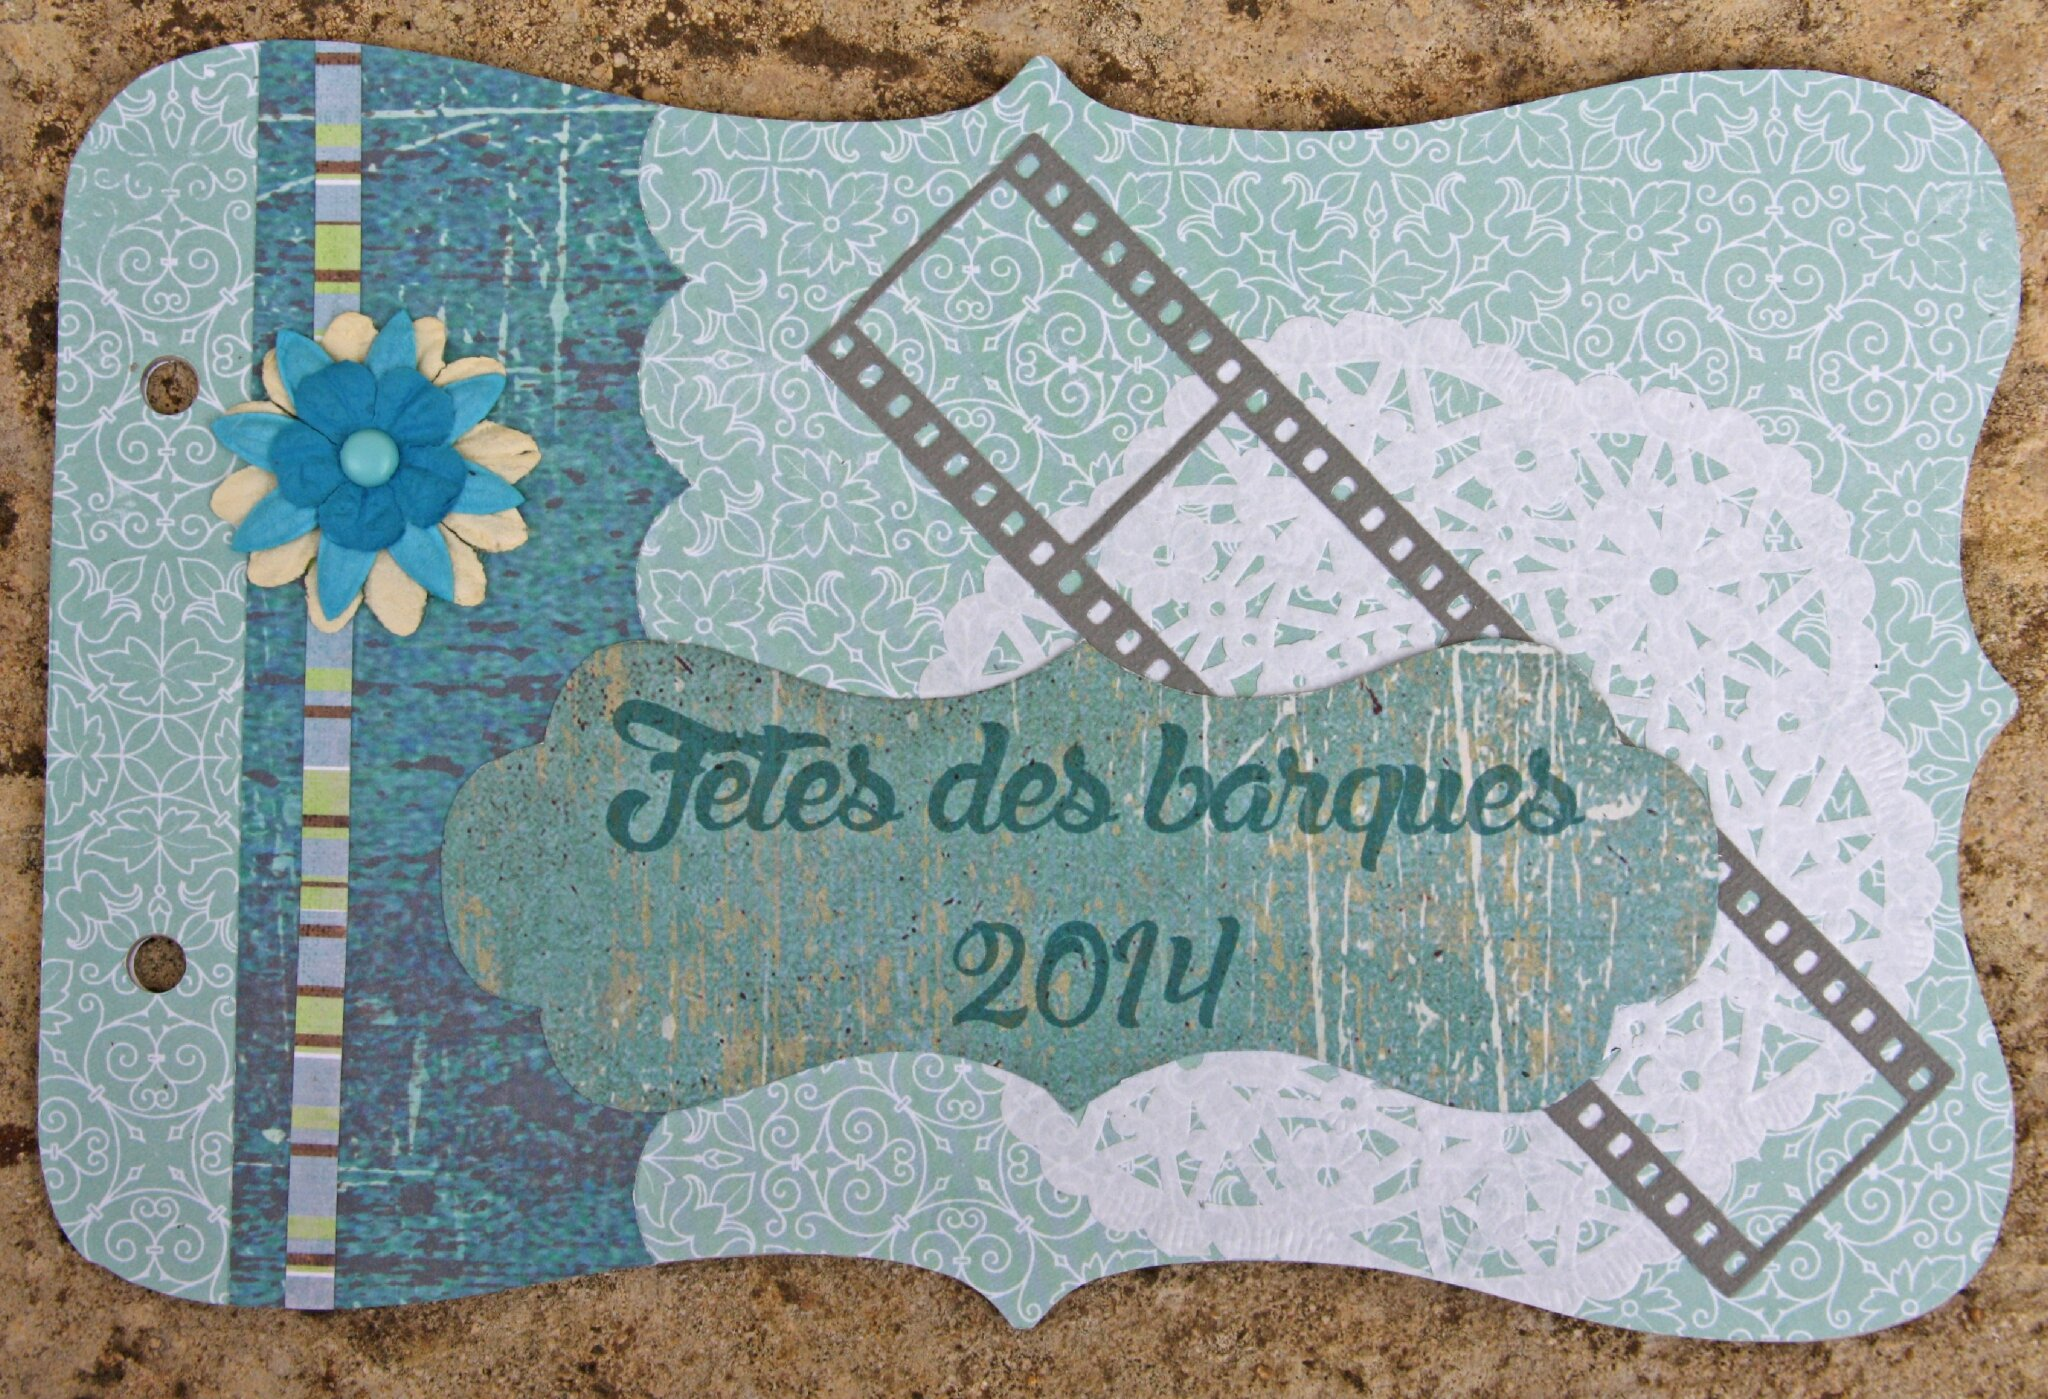 Couverture barques 2014